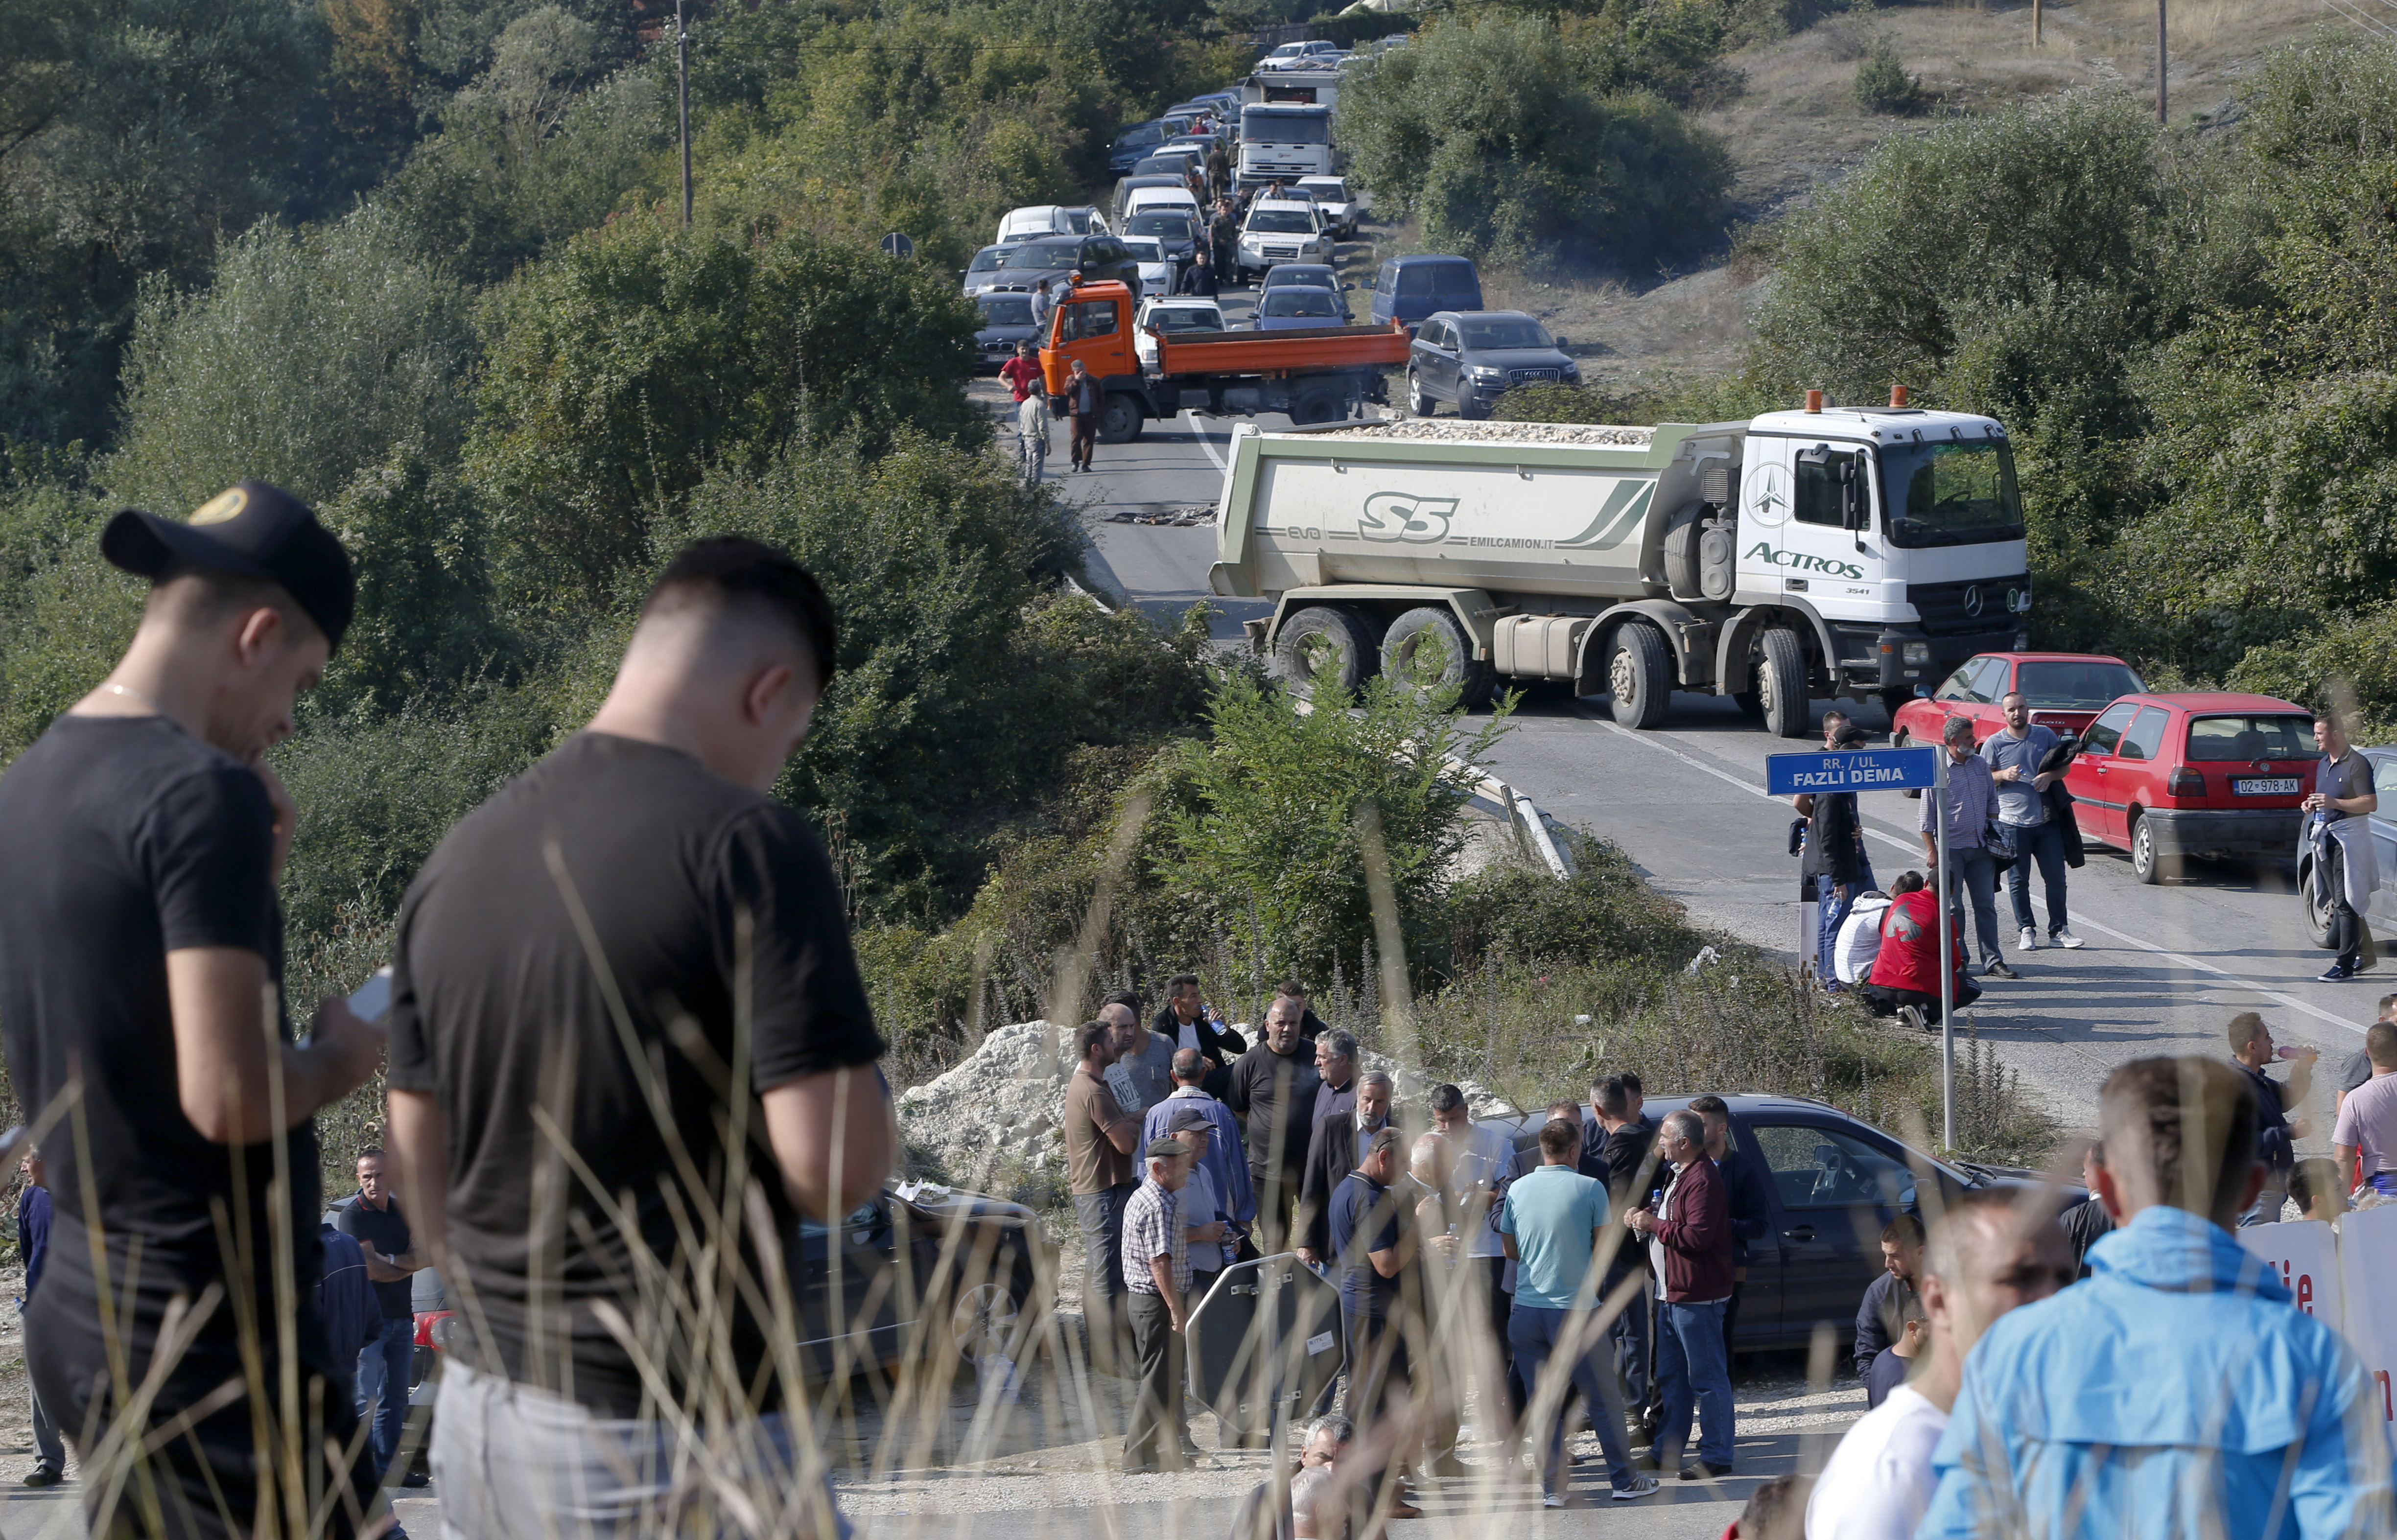 Trucks are parked on the road at a roadblock in Vojtesh, Kosovo, Sept. 9, 2018.